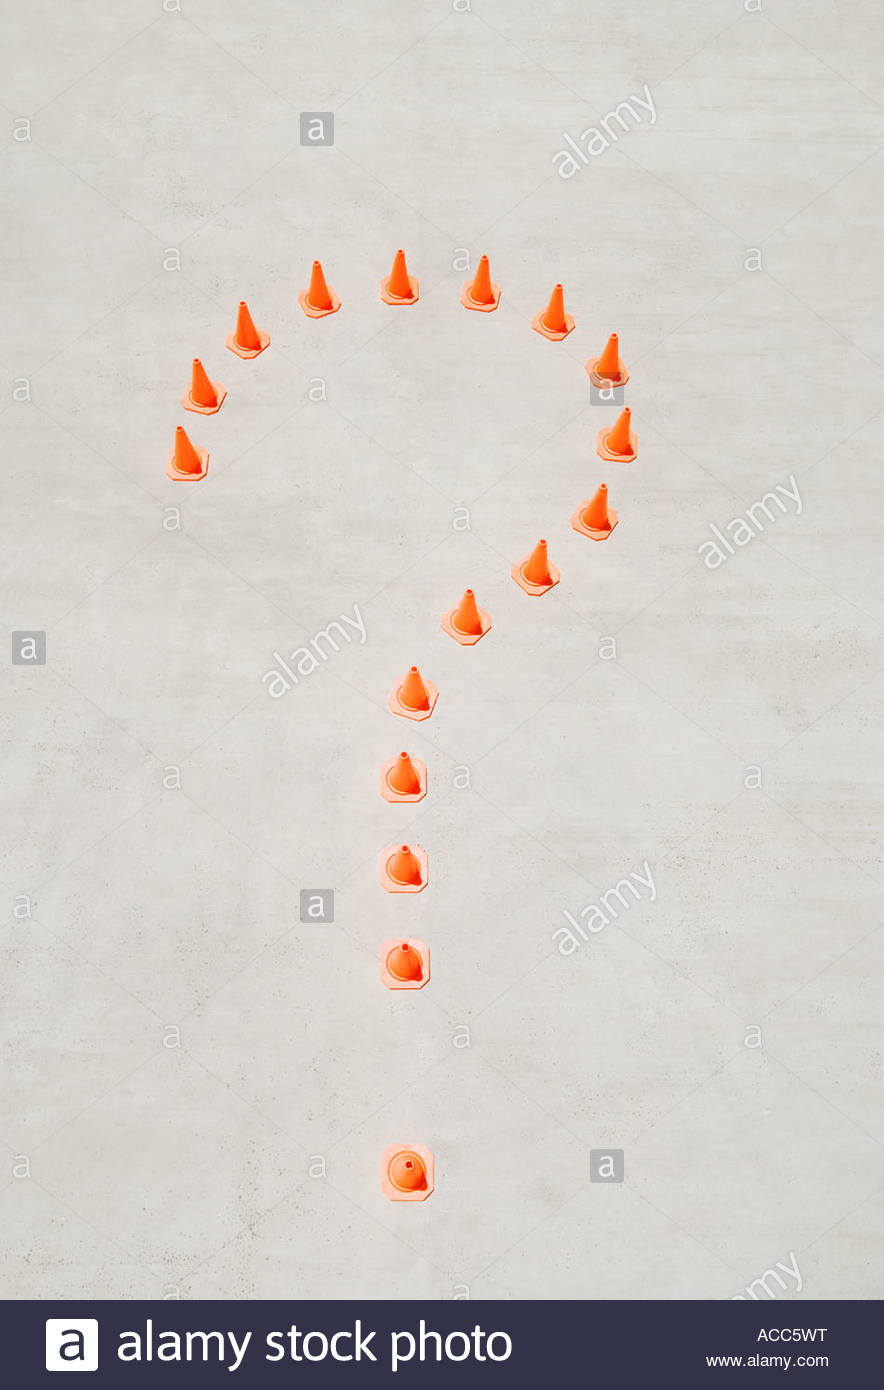 Aerial view of traffic cones forming question mark - Stock Image